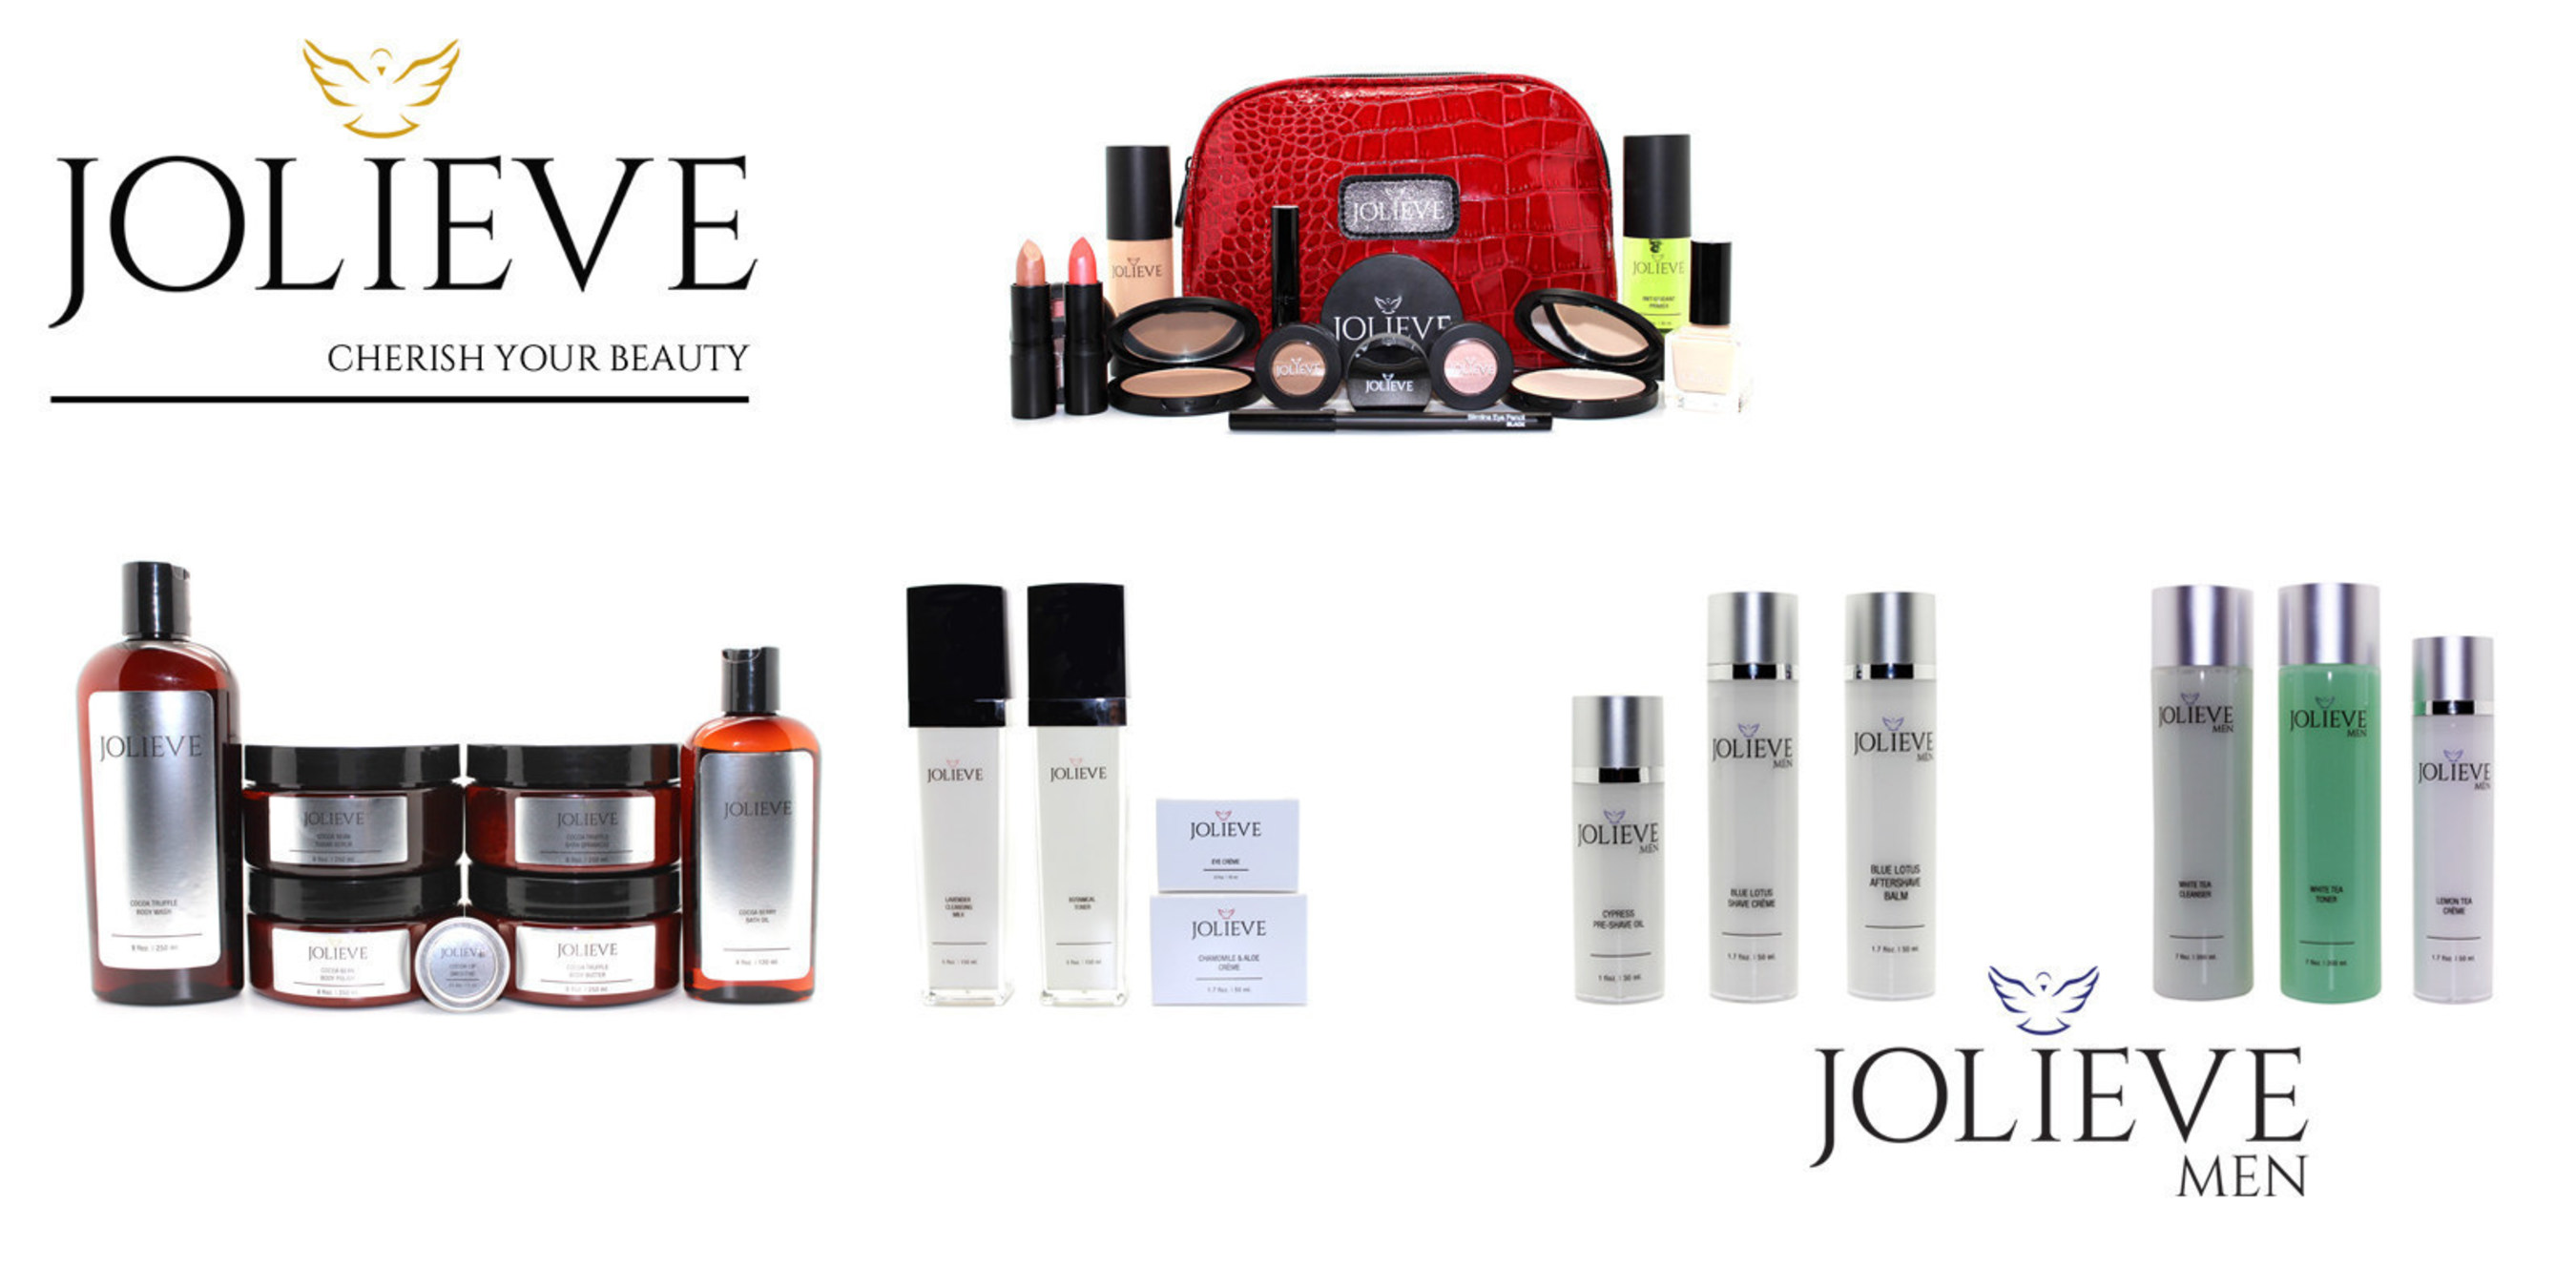 Online Gift Retailer Gifts Ready to Go Announces JOLIEVE Luxury Bath, Body, Skincare and Mineral Makeup Brand